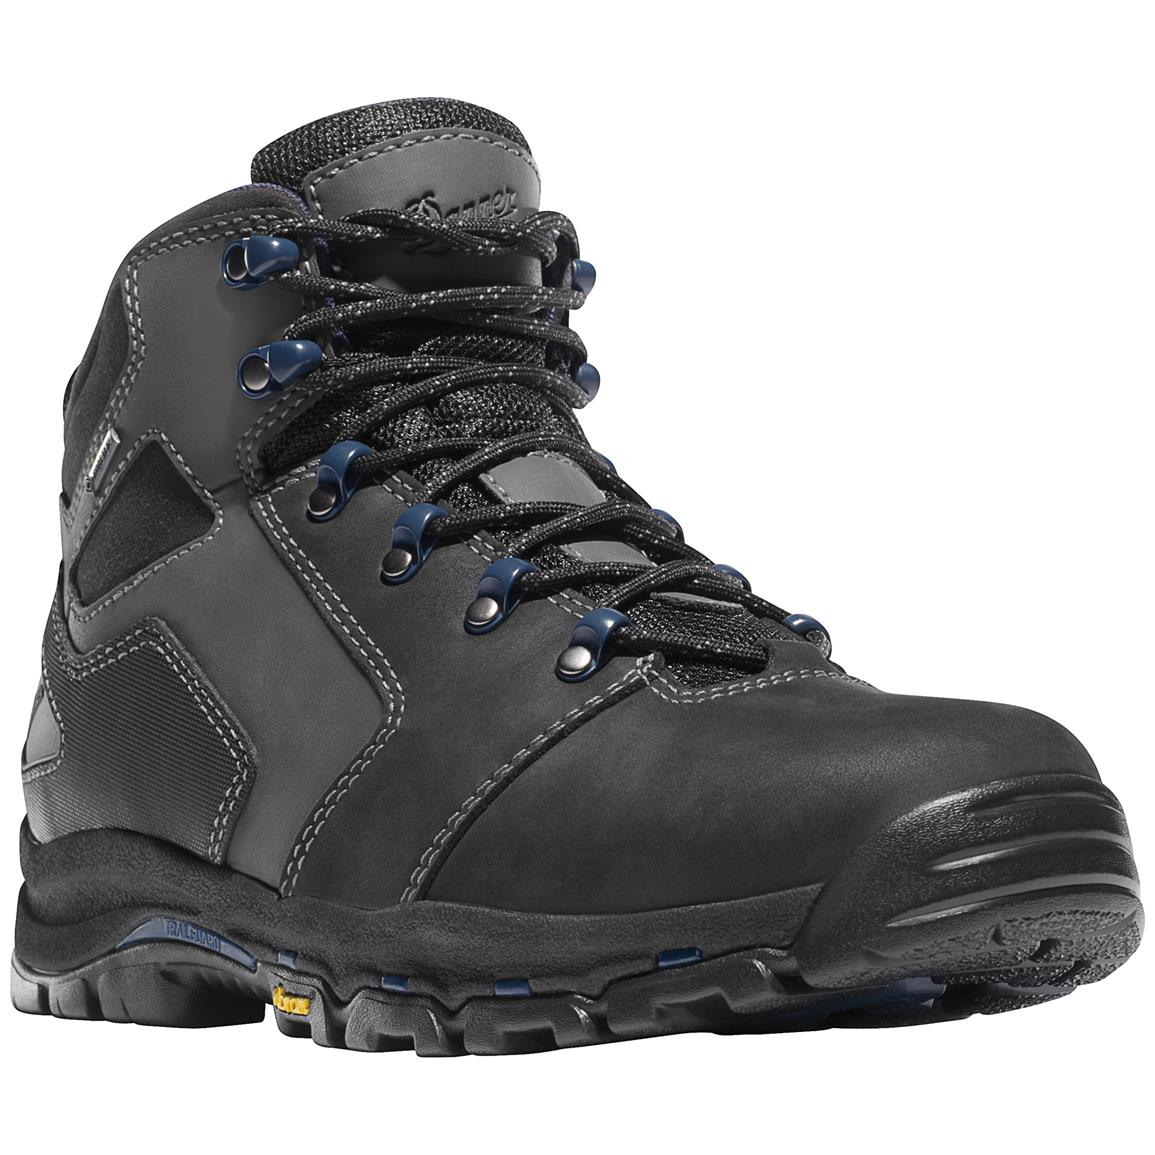 Men's Danner® 4.5 inch Vicious GTX® Non-Metallic Safety Toe Work Boots, Black / Blue